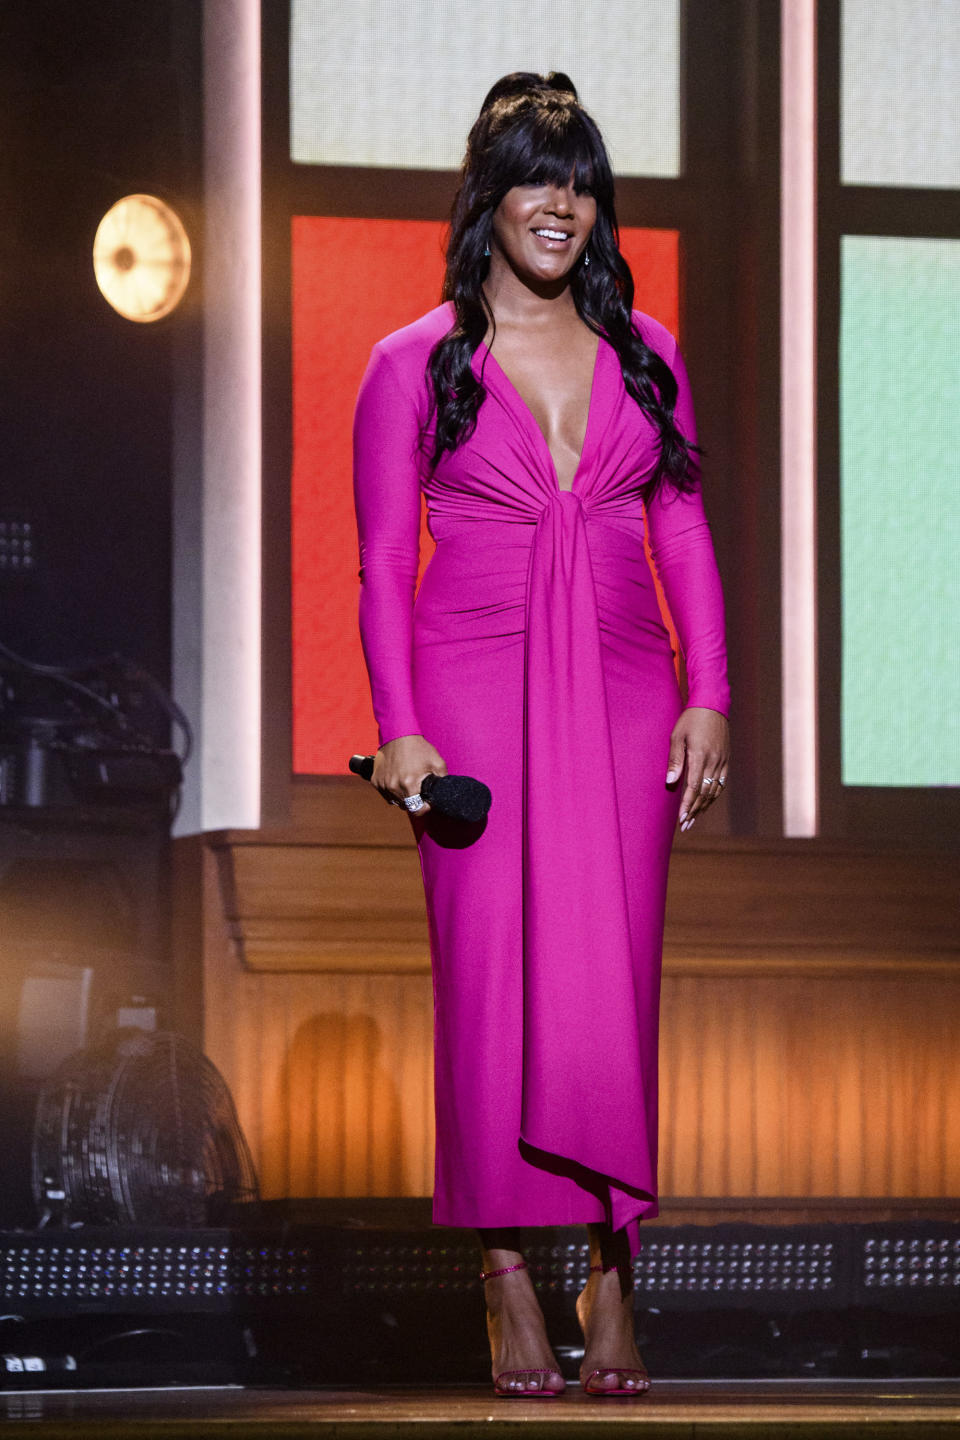 Mickey Guyton attends the 56th annual Academy of Country Music Awards on Friday April 16, 2021 at the Ryman Auditorium in Nashville, Tenn. The awards show airs on April 18 with both live and prerecorded segments. (Photo by Amy Harris/Invision/AP)